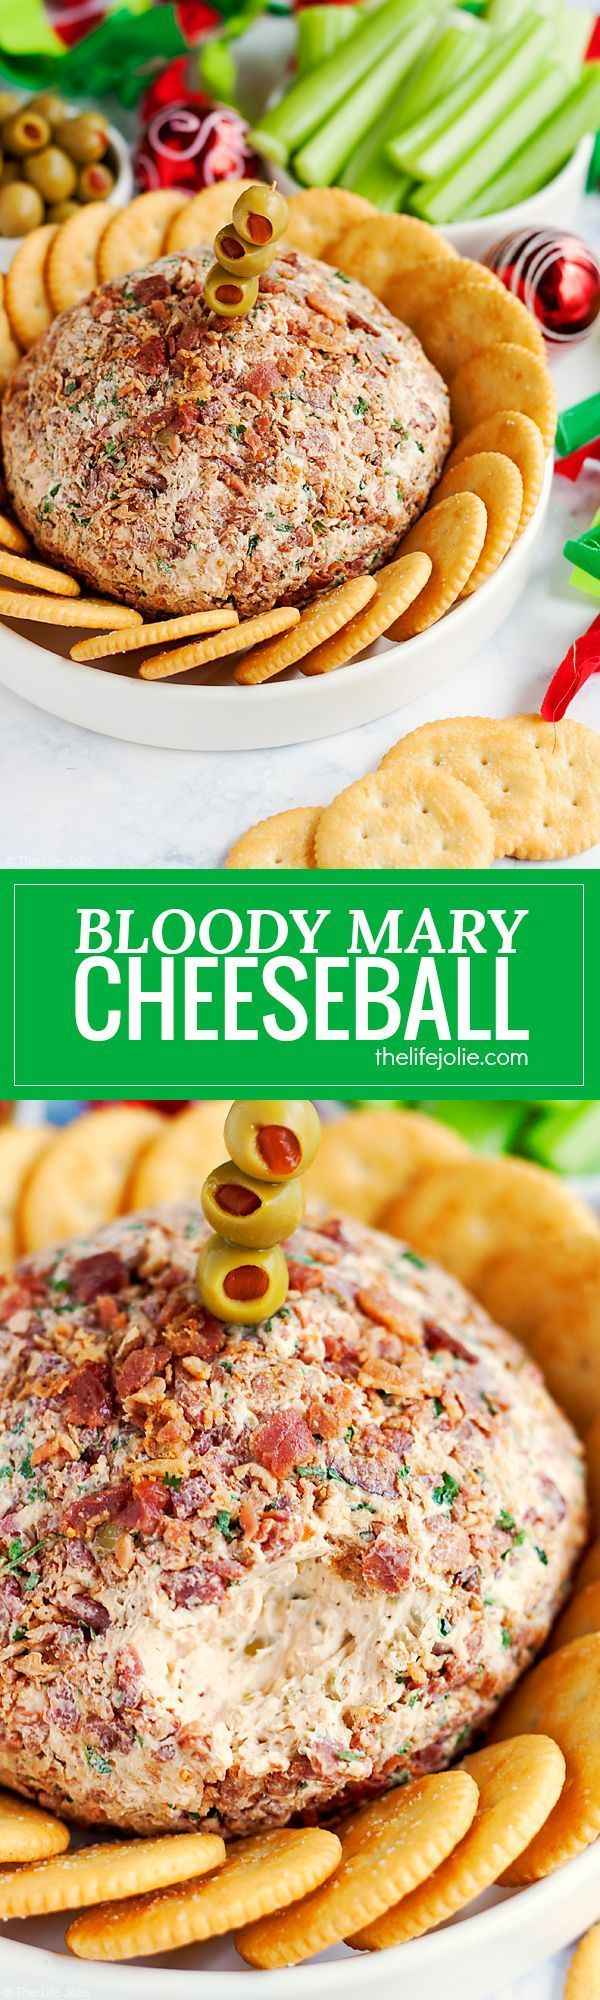 This Bloody Mary Cheeseball Recipe is the best easy appetizer option for entertaining. Made with many of the same ingredients and toppings as a traditional Bloody Mary drink (but without the alcohol) this family friendly hors d'oeuvre is full of great fla Real Advice Gal your truthful girlfriend